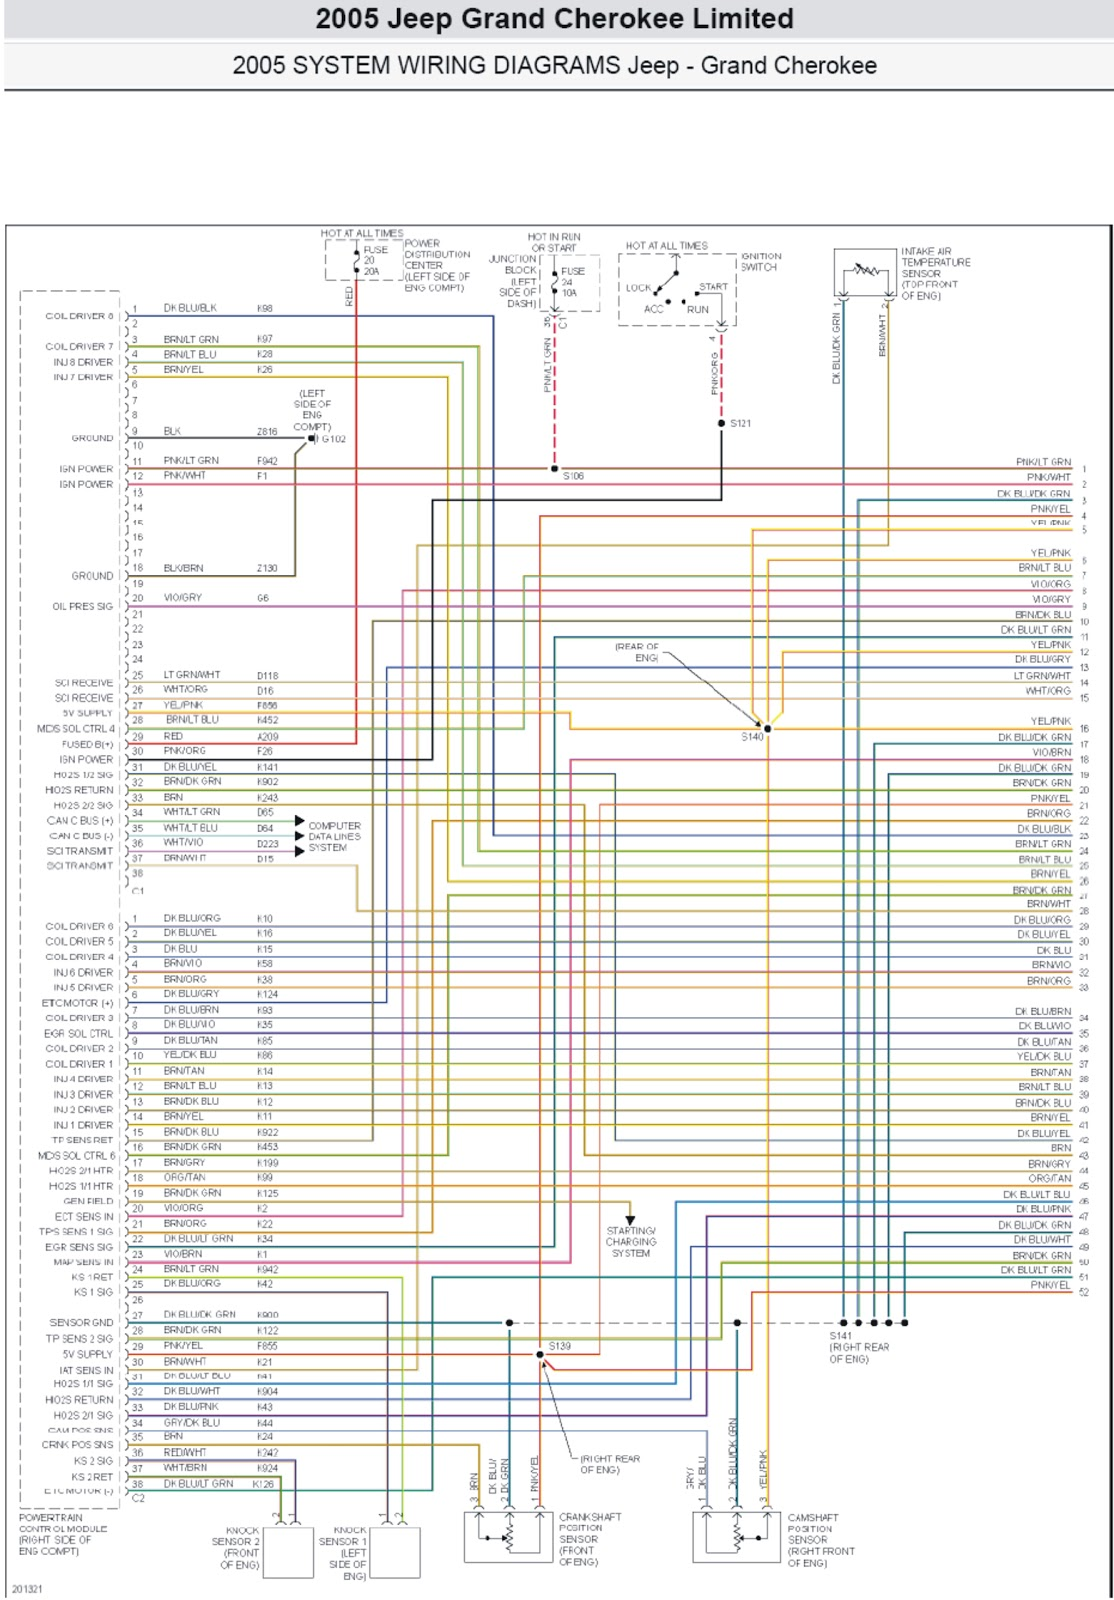 diagram of 2004 jeep cherokee ignition system wiring diagrams text 2004 Jeep Grand Cherokee Fuse Box Diagram